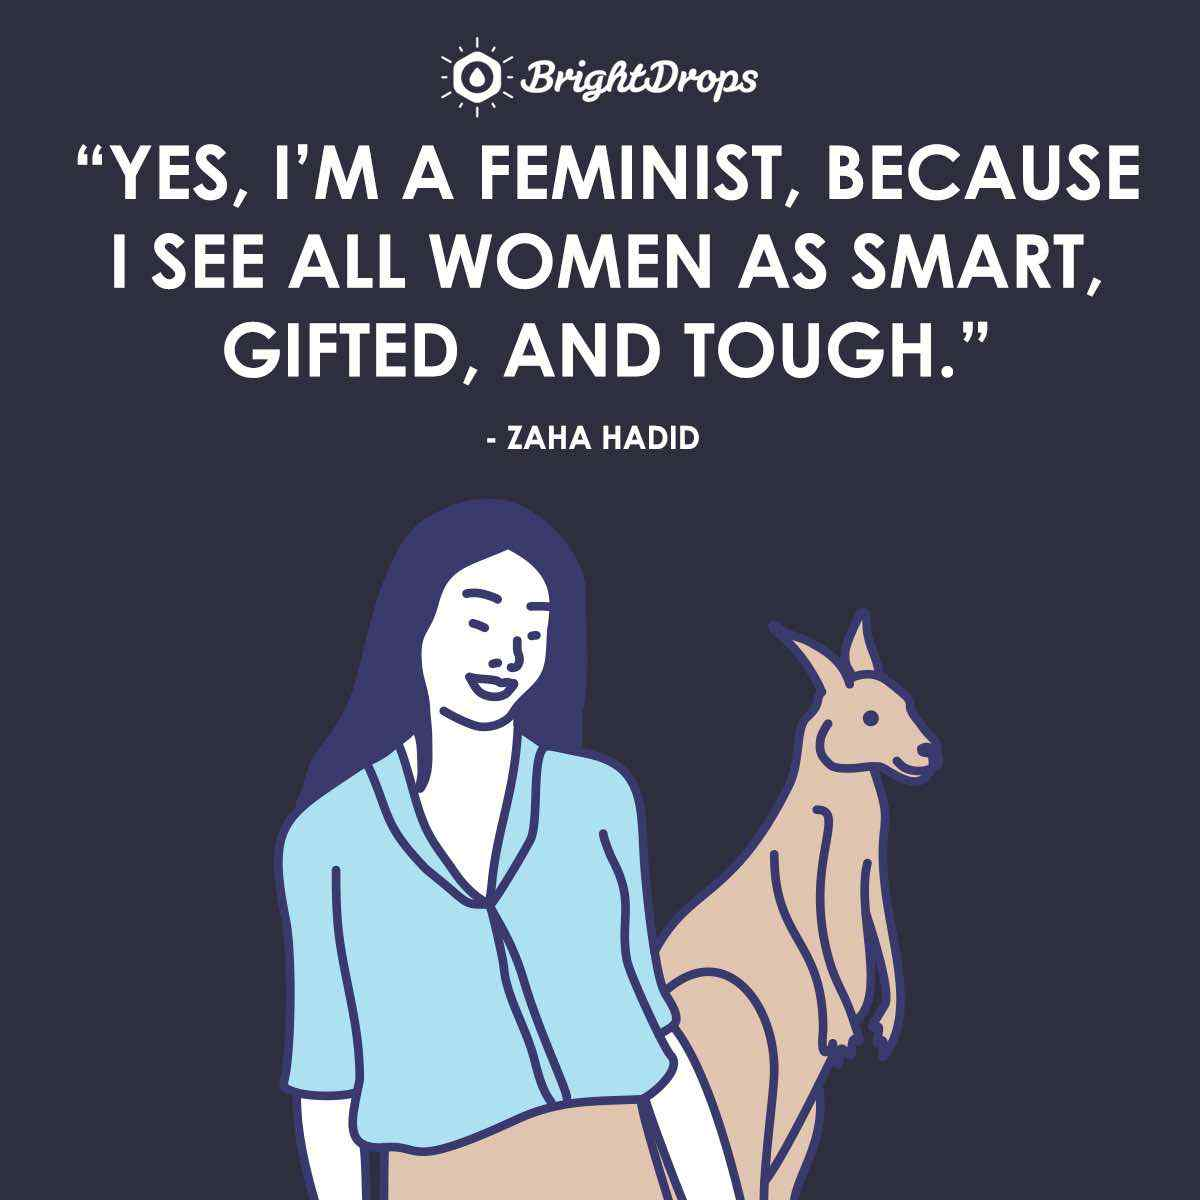 """Yes, I'm a feminist, because I see all women as smart, gifted, and tough."" ~ Zaha Hadid"